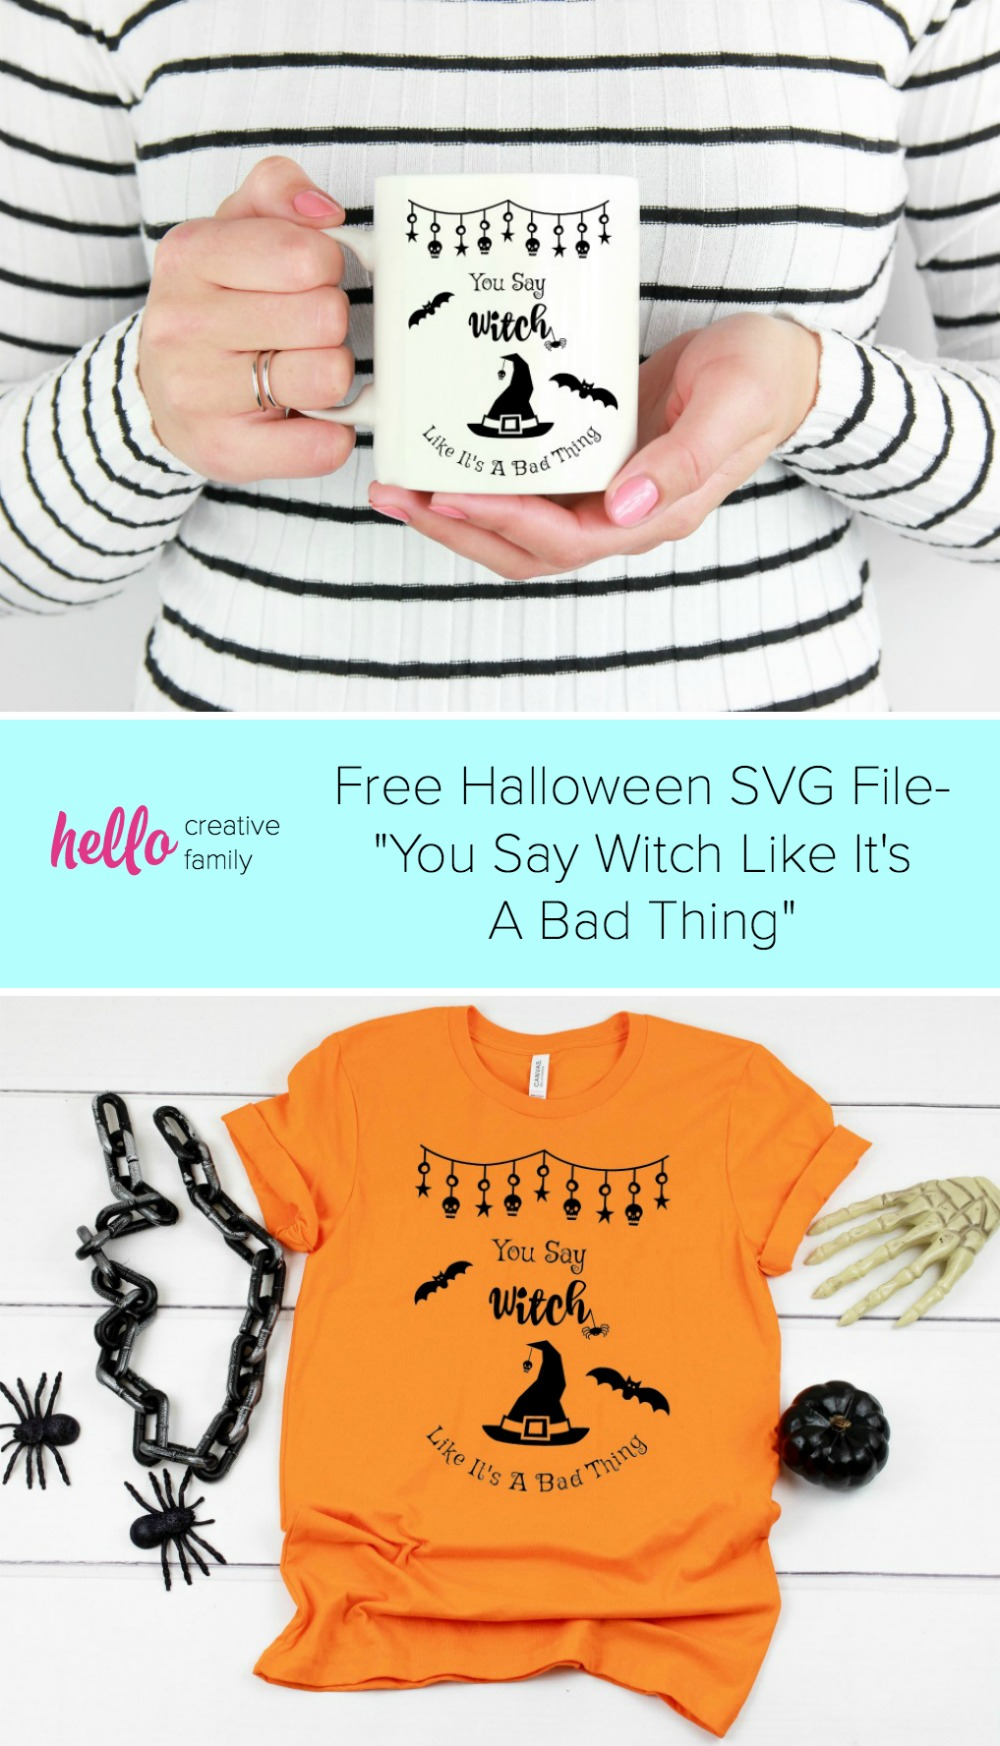 Halloween Friends Shirt Svg.Free Halloween Svg File You Say Witch Like It S A Bad Thing